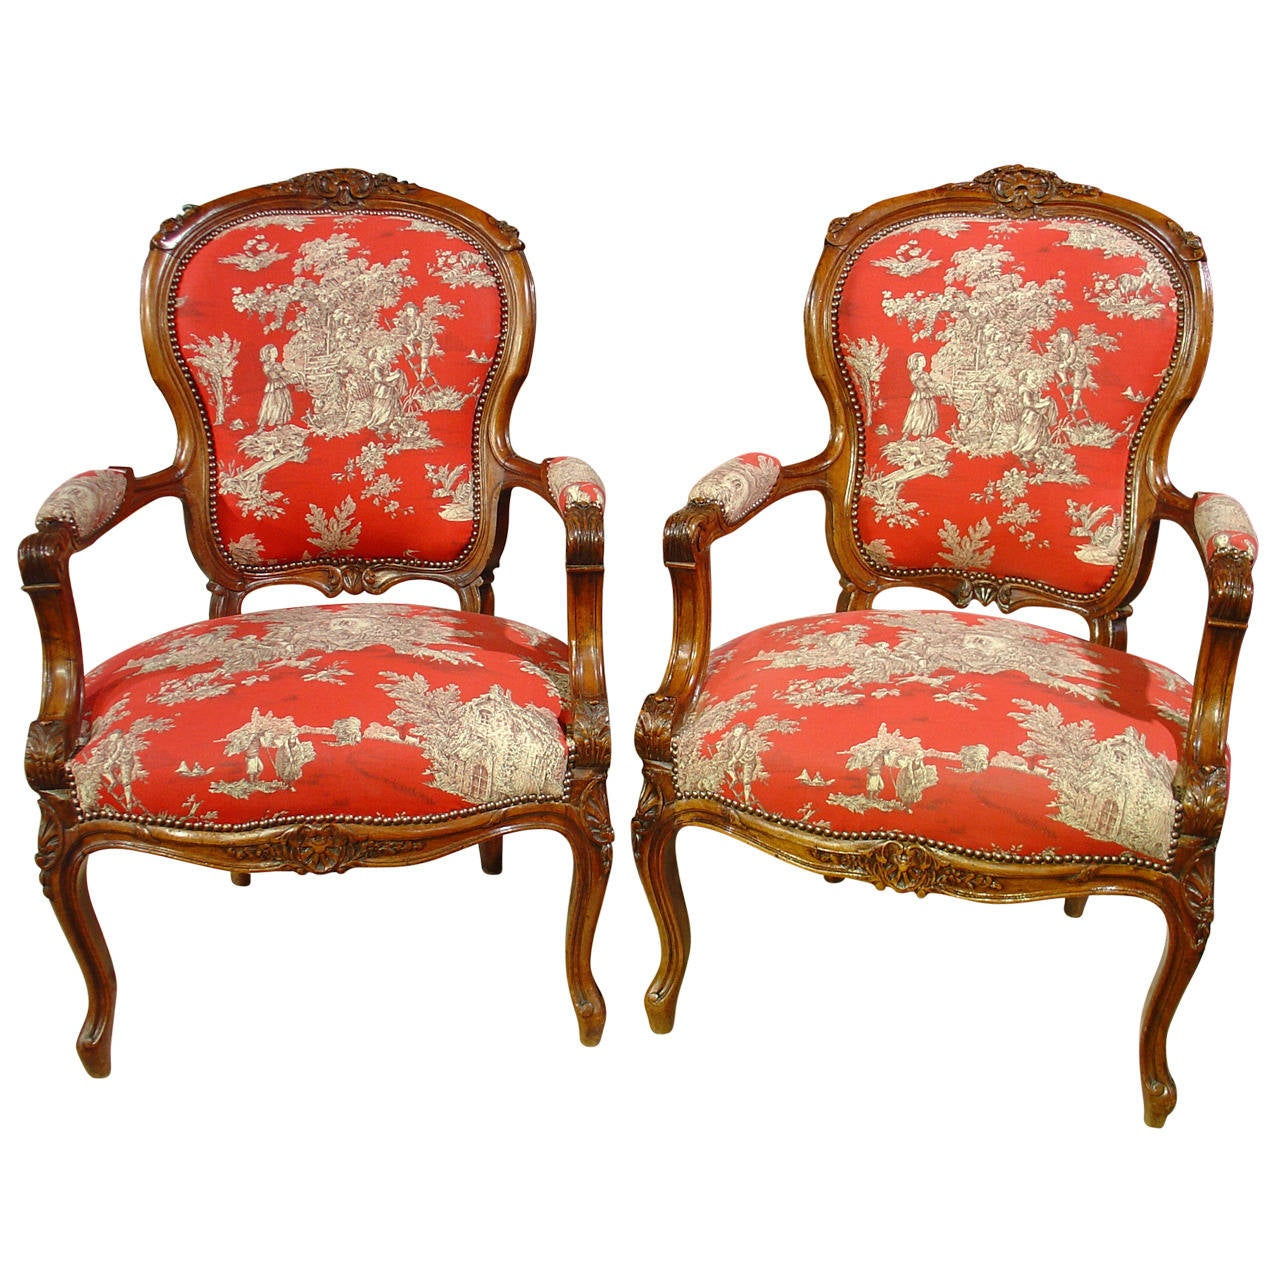 Toile Chair Pair Of Louis Xv Style Walnut Fauteuils With Toile De Jouy